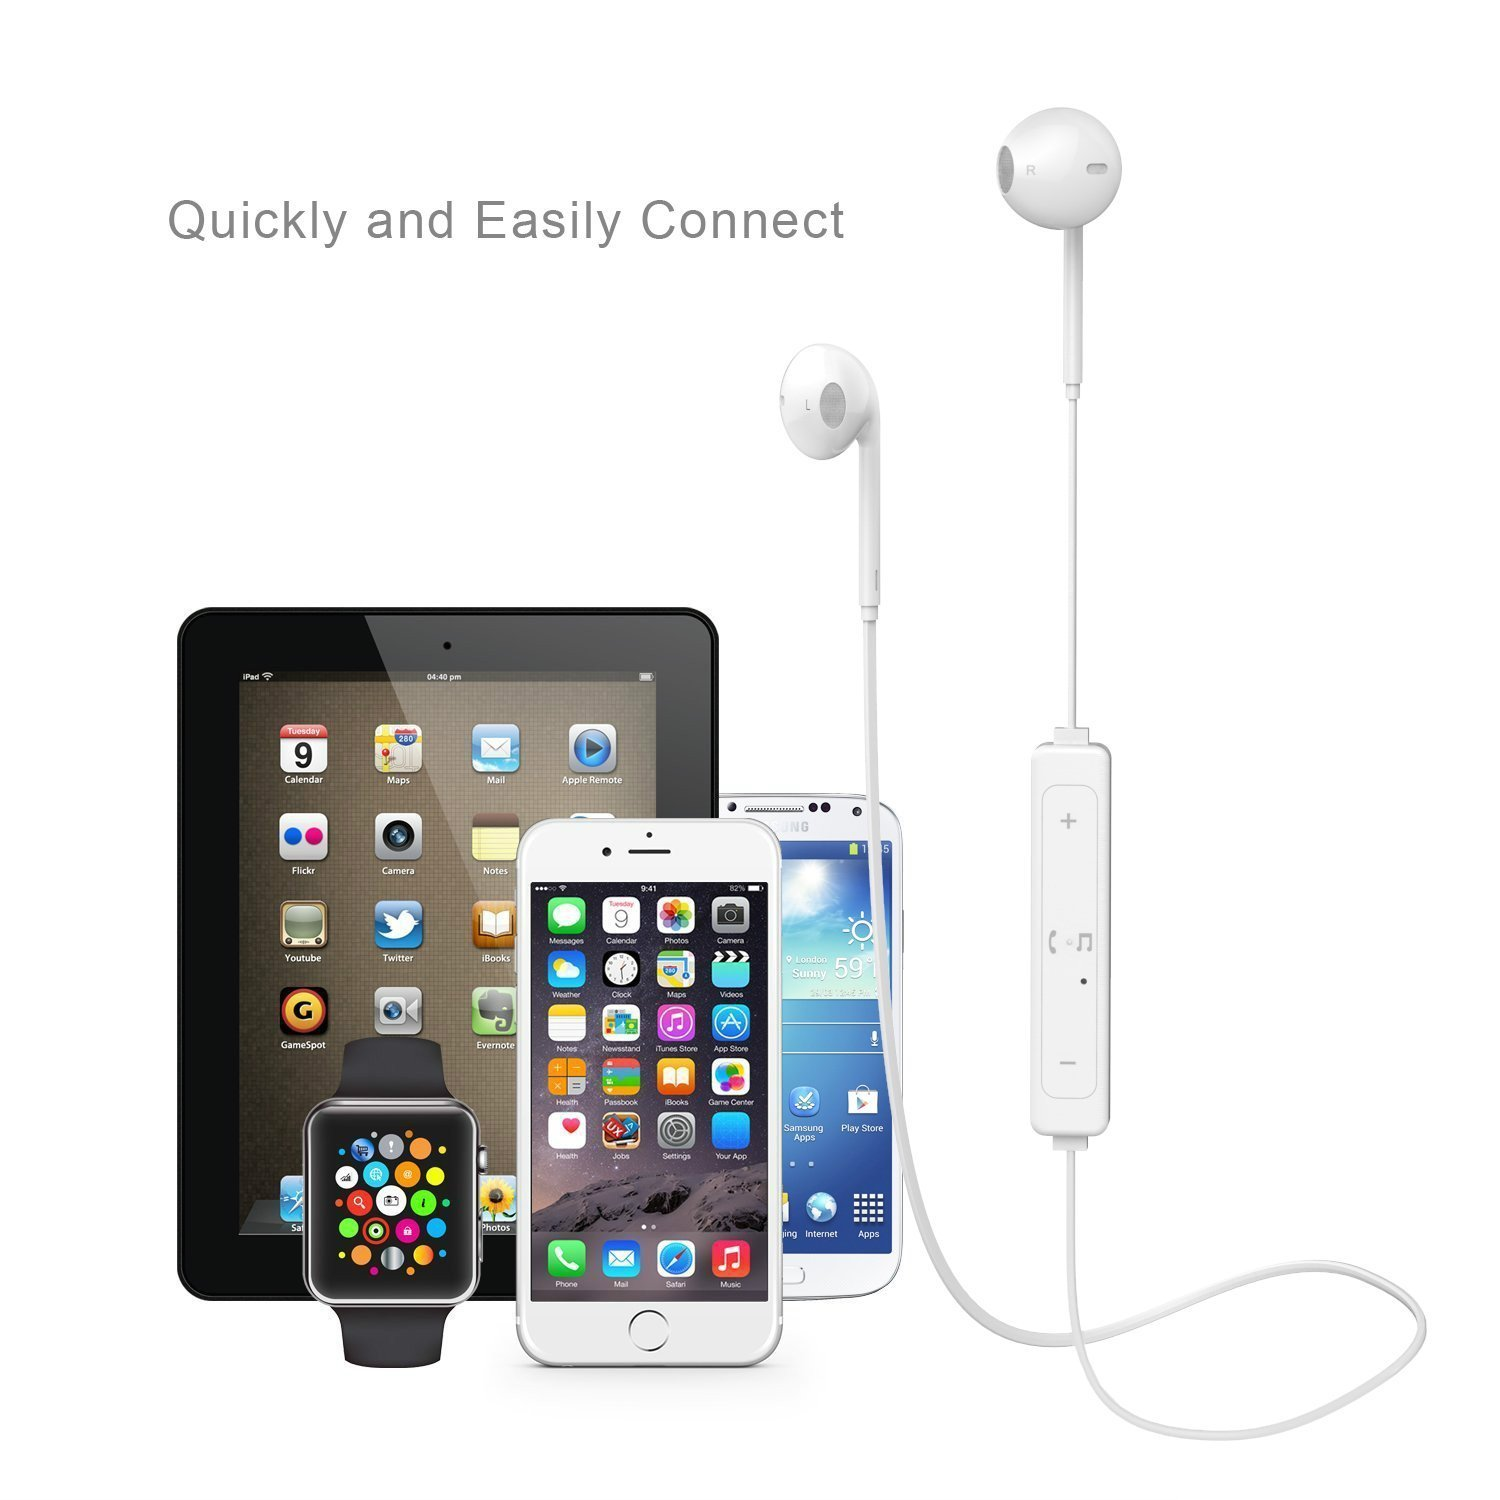 Auriculares Bluetooth, auriculares inalámbricos deportivos estéreo para smartphones Apple iPhone 7, Plus, 6s y Samsung, de color blanco: Amazon.es: ...